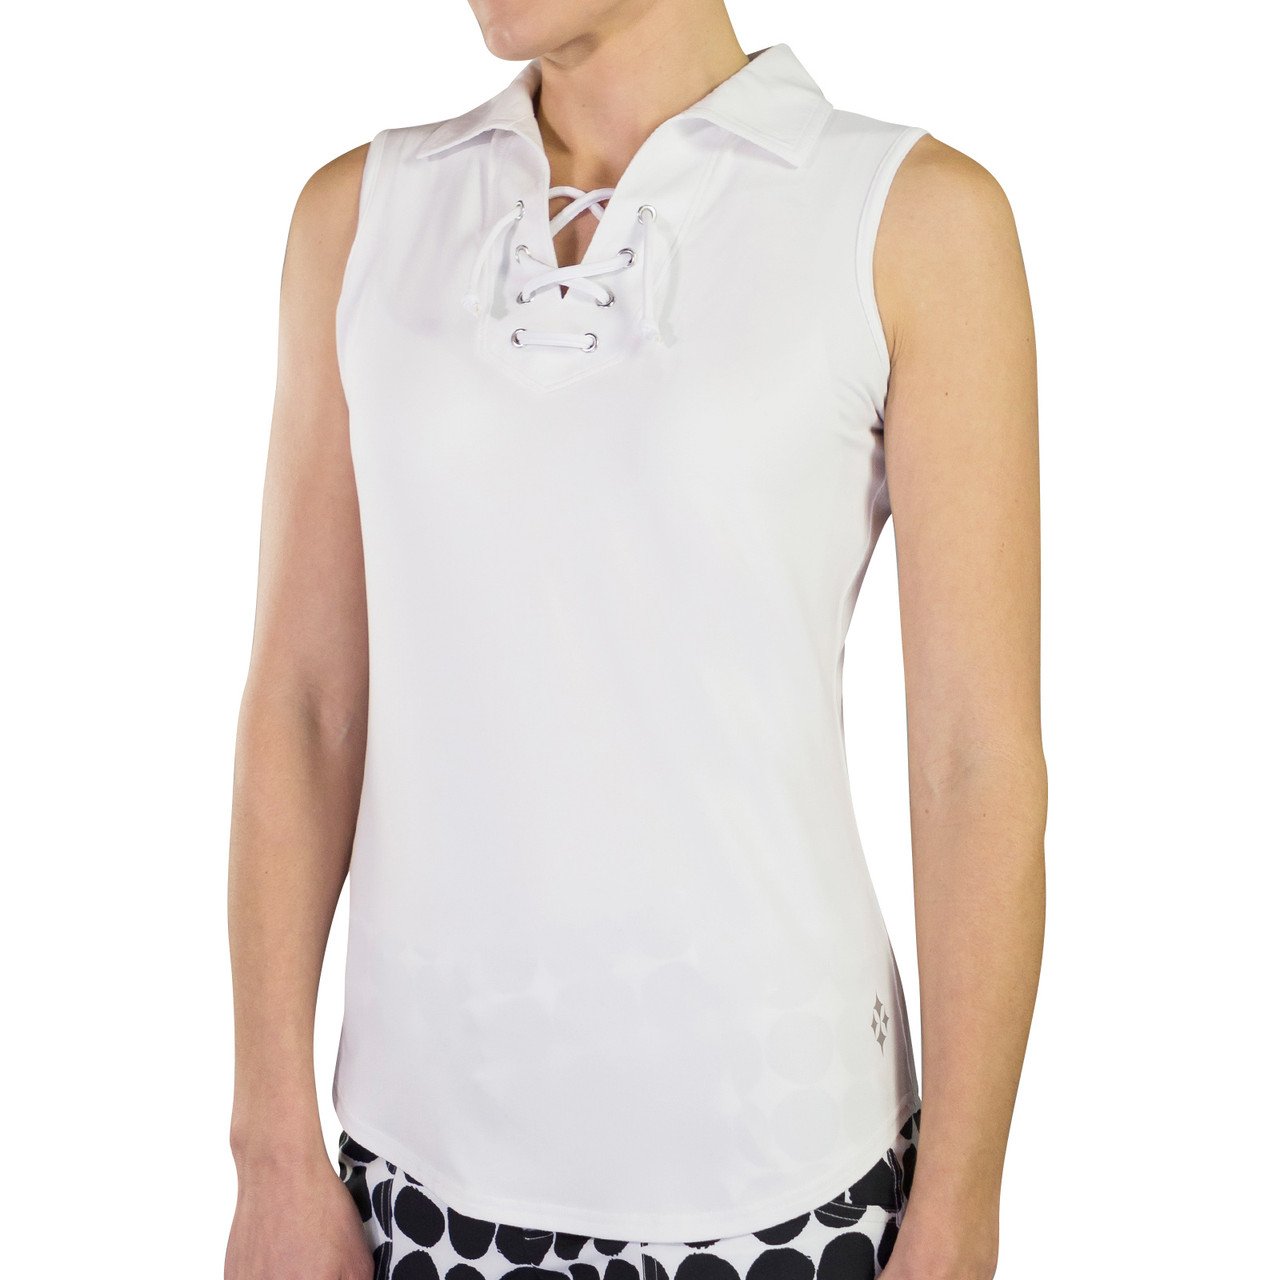 498e2aa7 ... JoFit Women's Lace Up Sleeveless Polo. See 3 more pictures